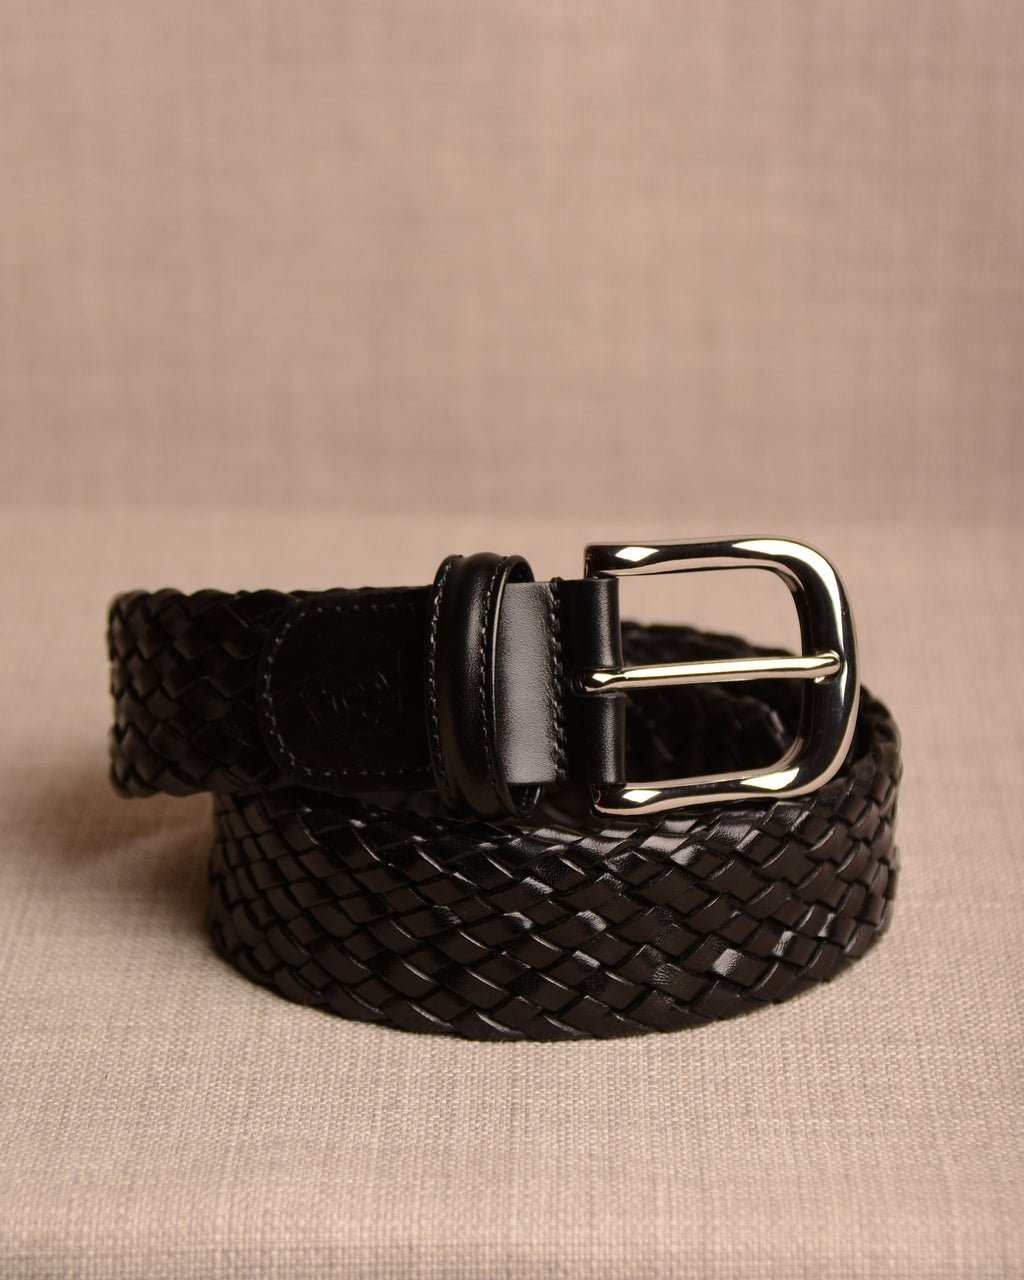 Crockett & Jones - Belt Black Weave